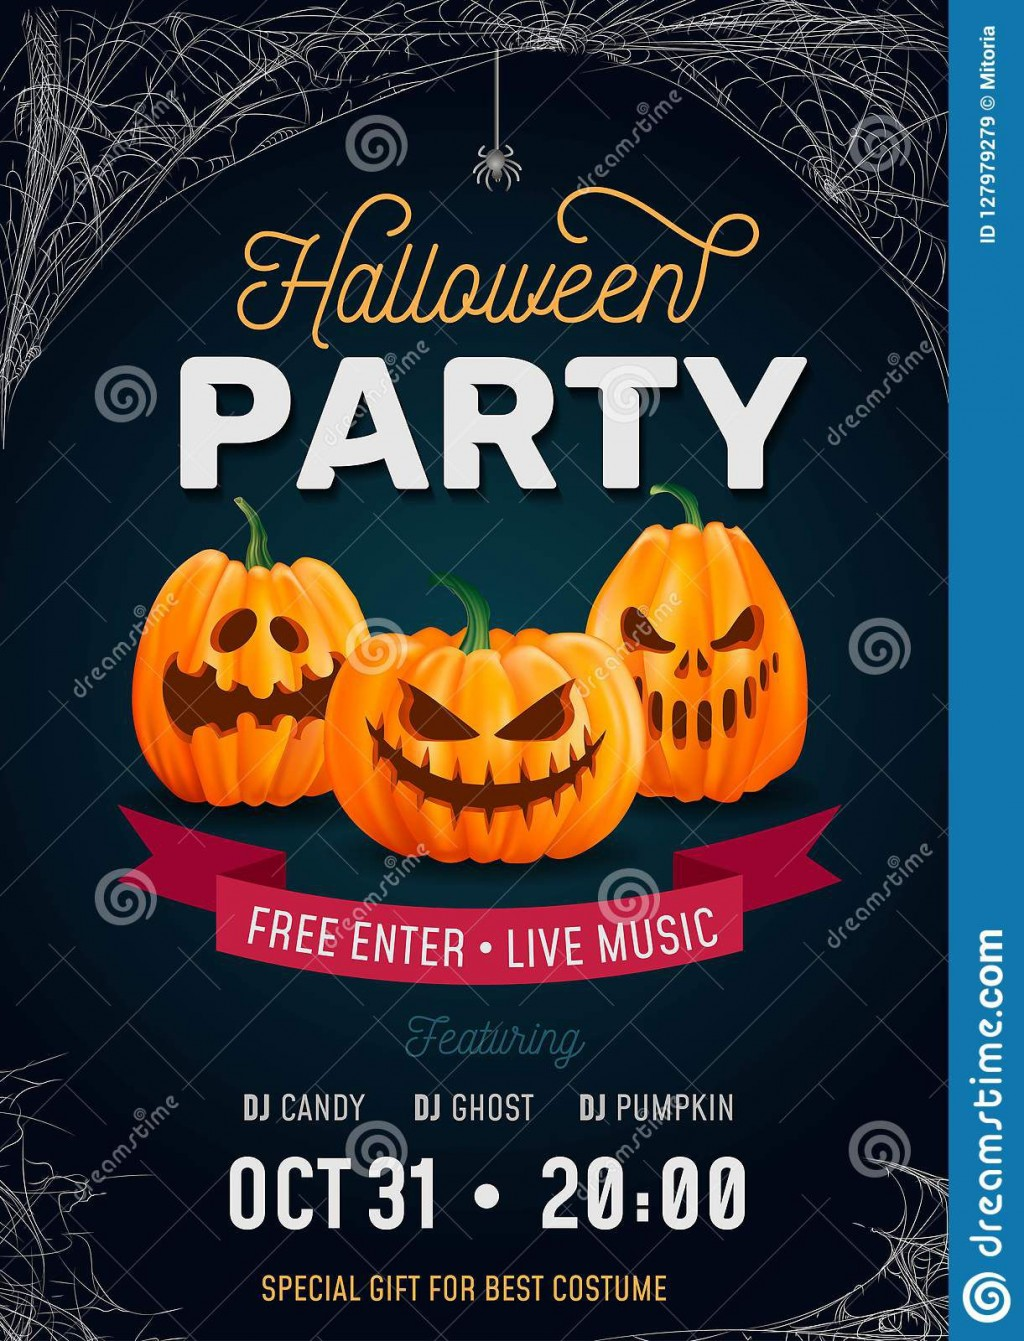 001 Surprising Free Halloween Invitation Template Highest Clarity  Templates Microsoft Word Wedding Printable PartyLarge